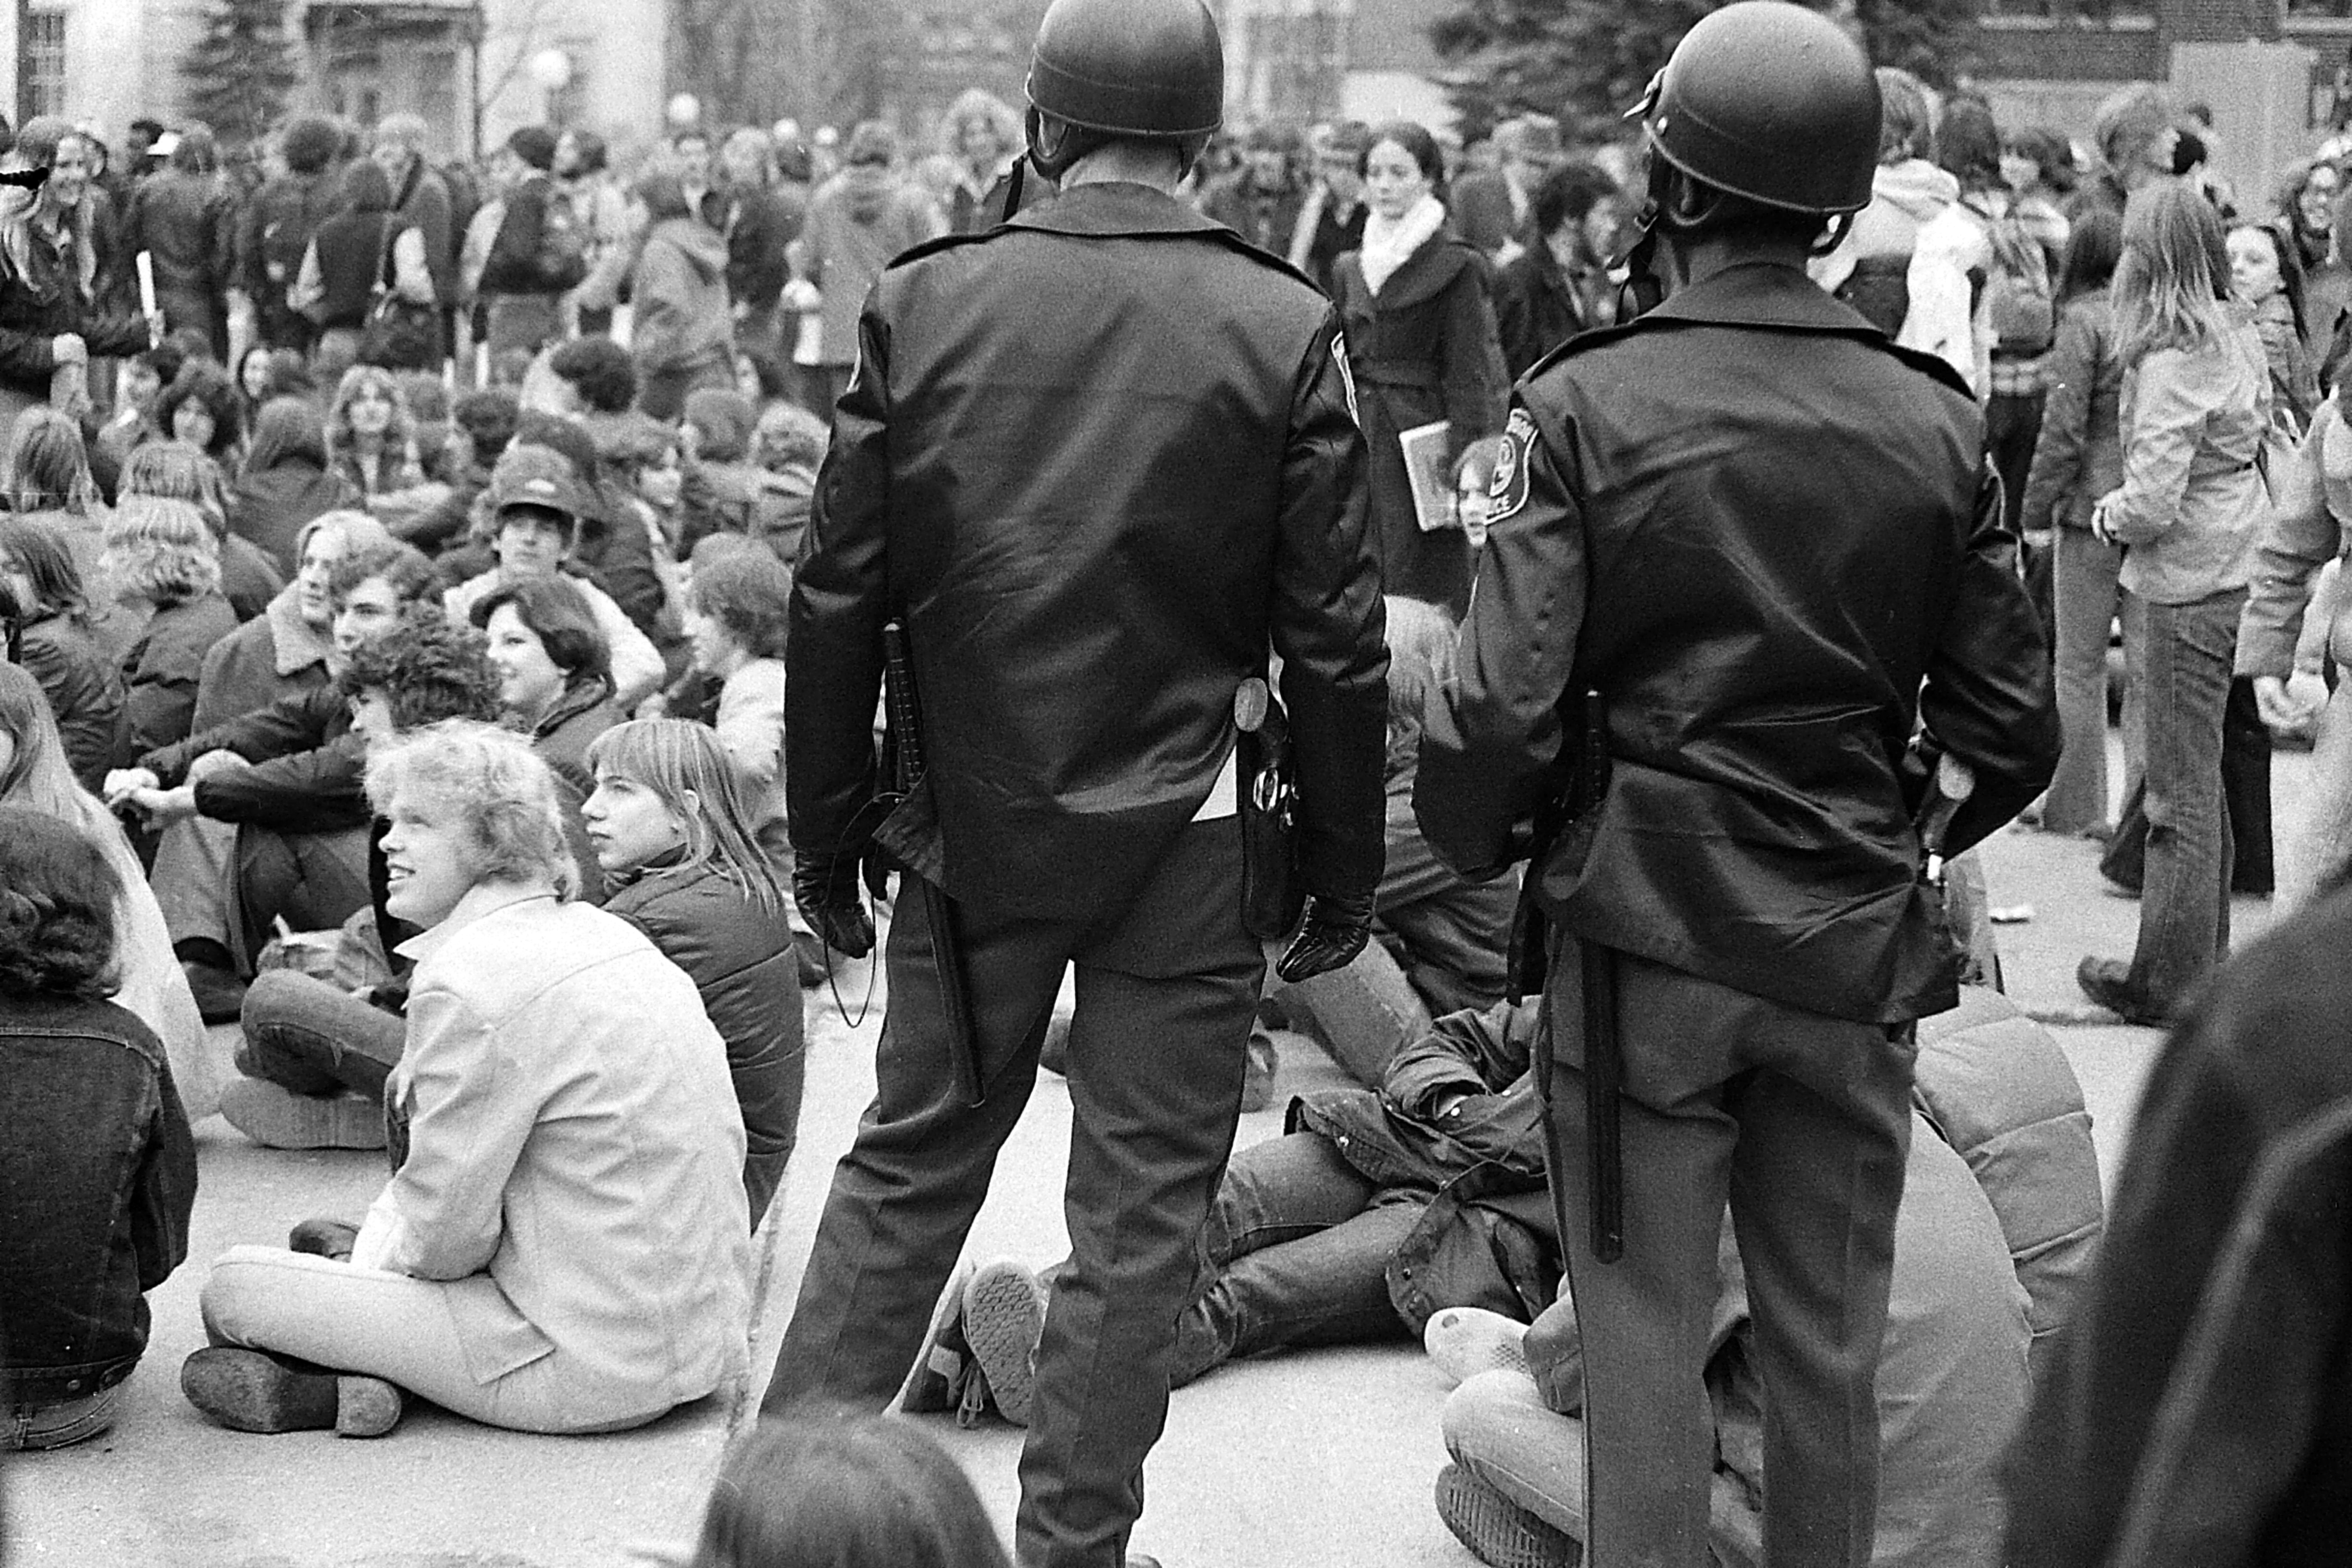 Hash Bash Crowd With Police, 1978 image